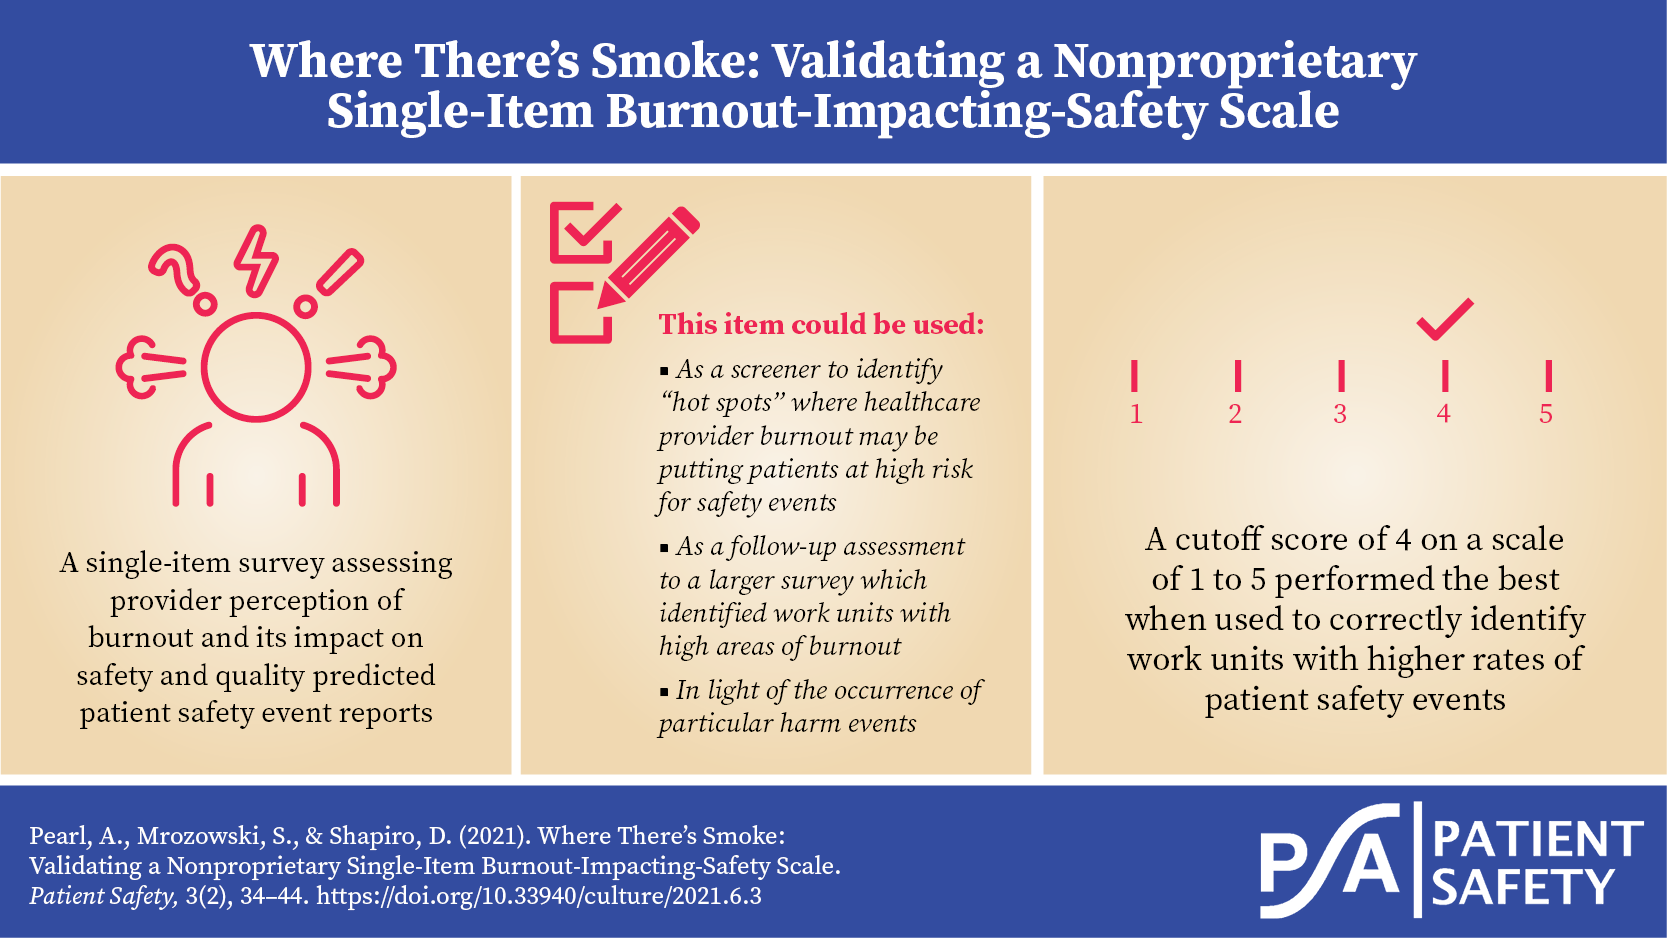 Where There's Smoke - visual abstract